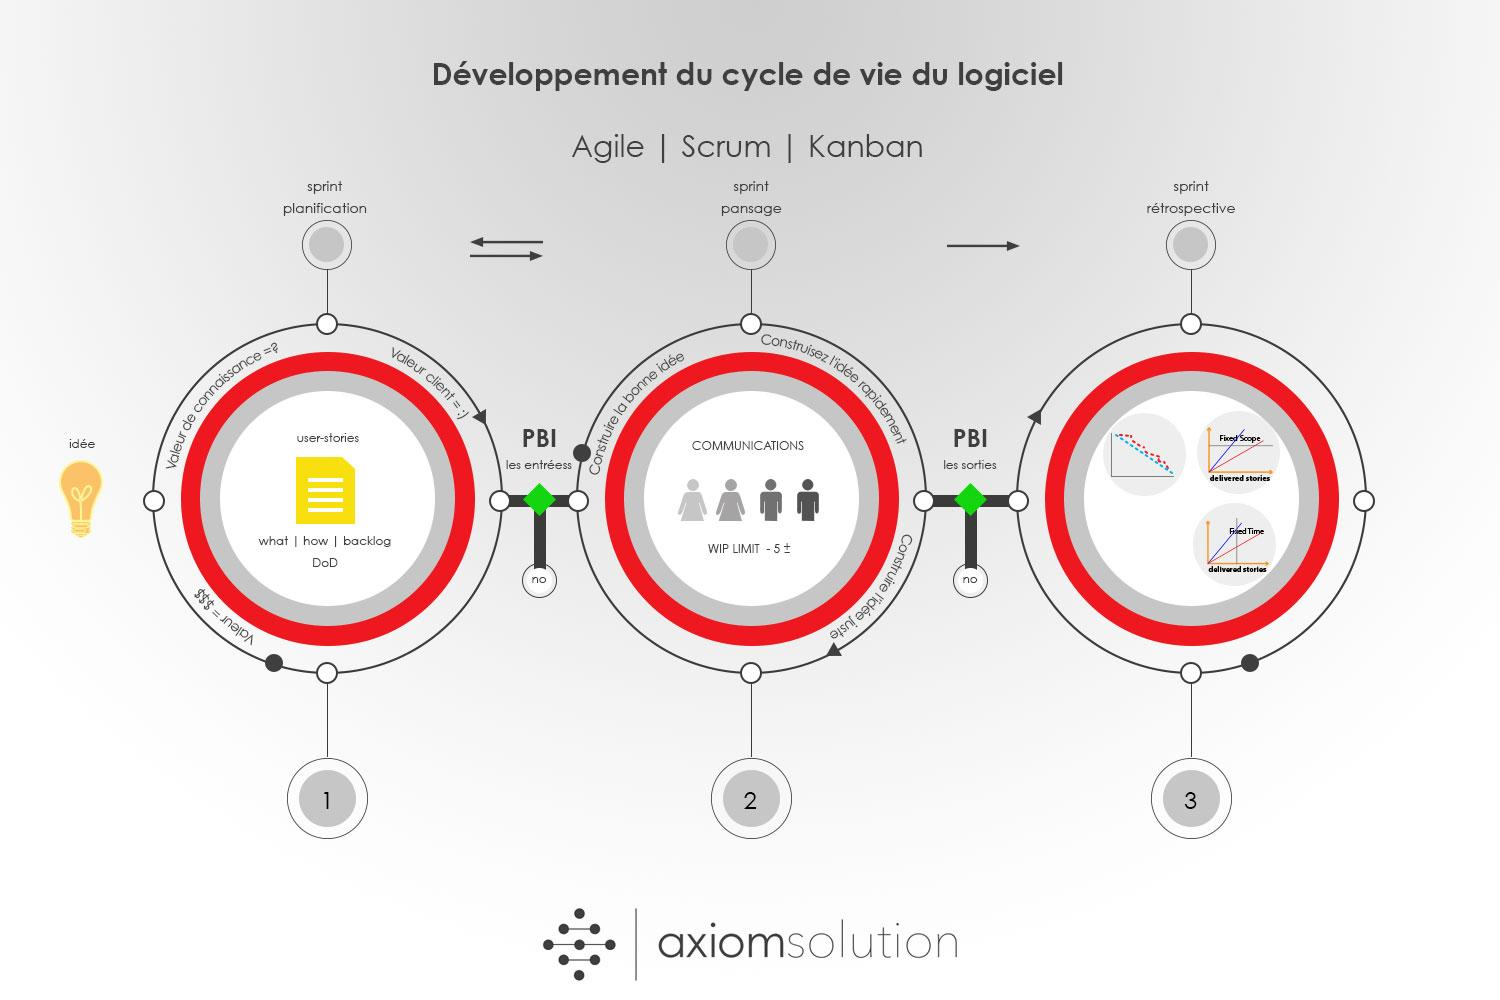 PDLC methodology axiomsolution